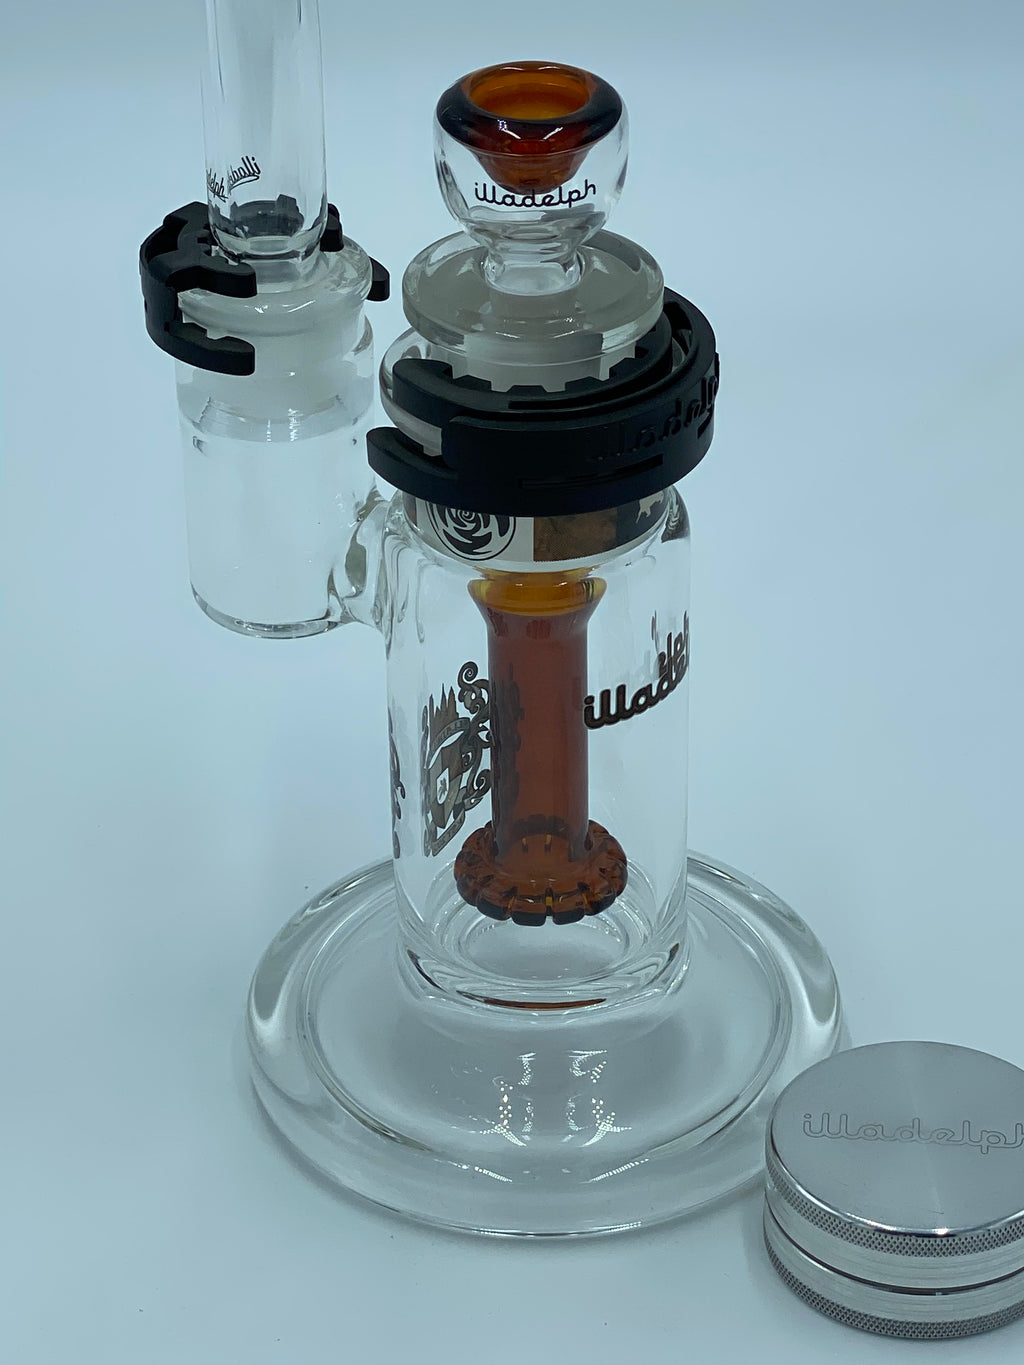 ILLADELPH SHOWER HEAD BUBBLER - Smoke Country - Land of the artistic glass blown bongs